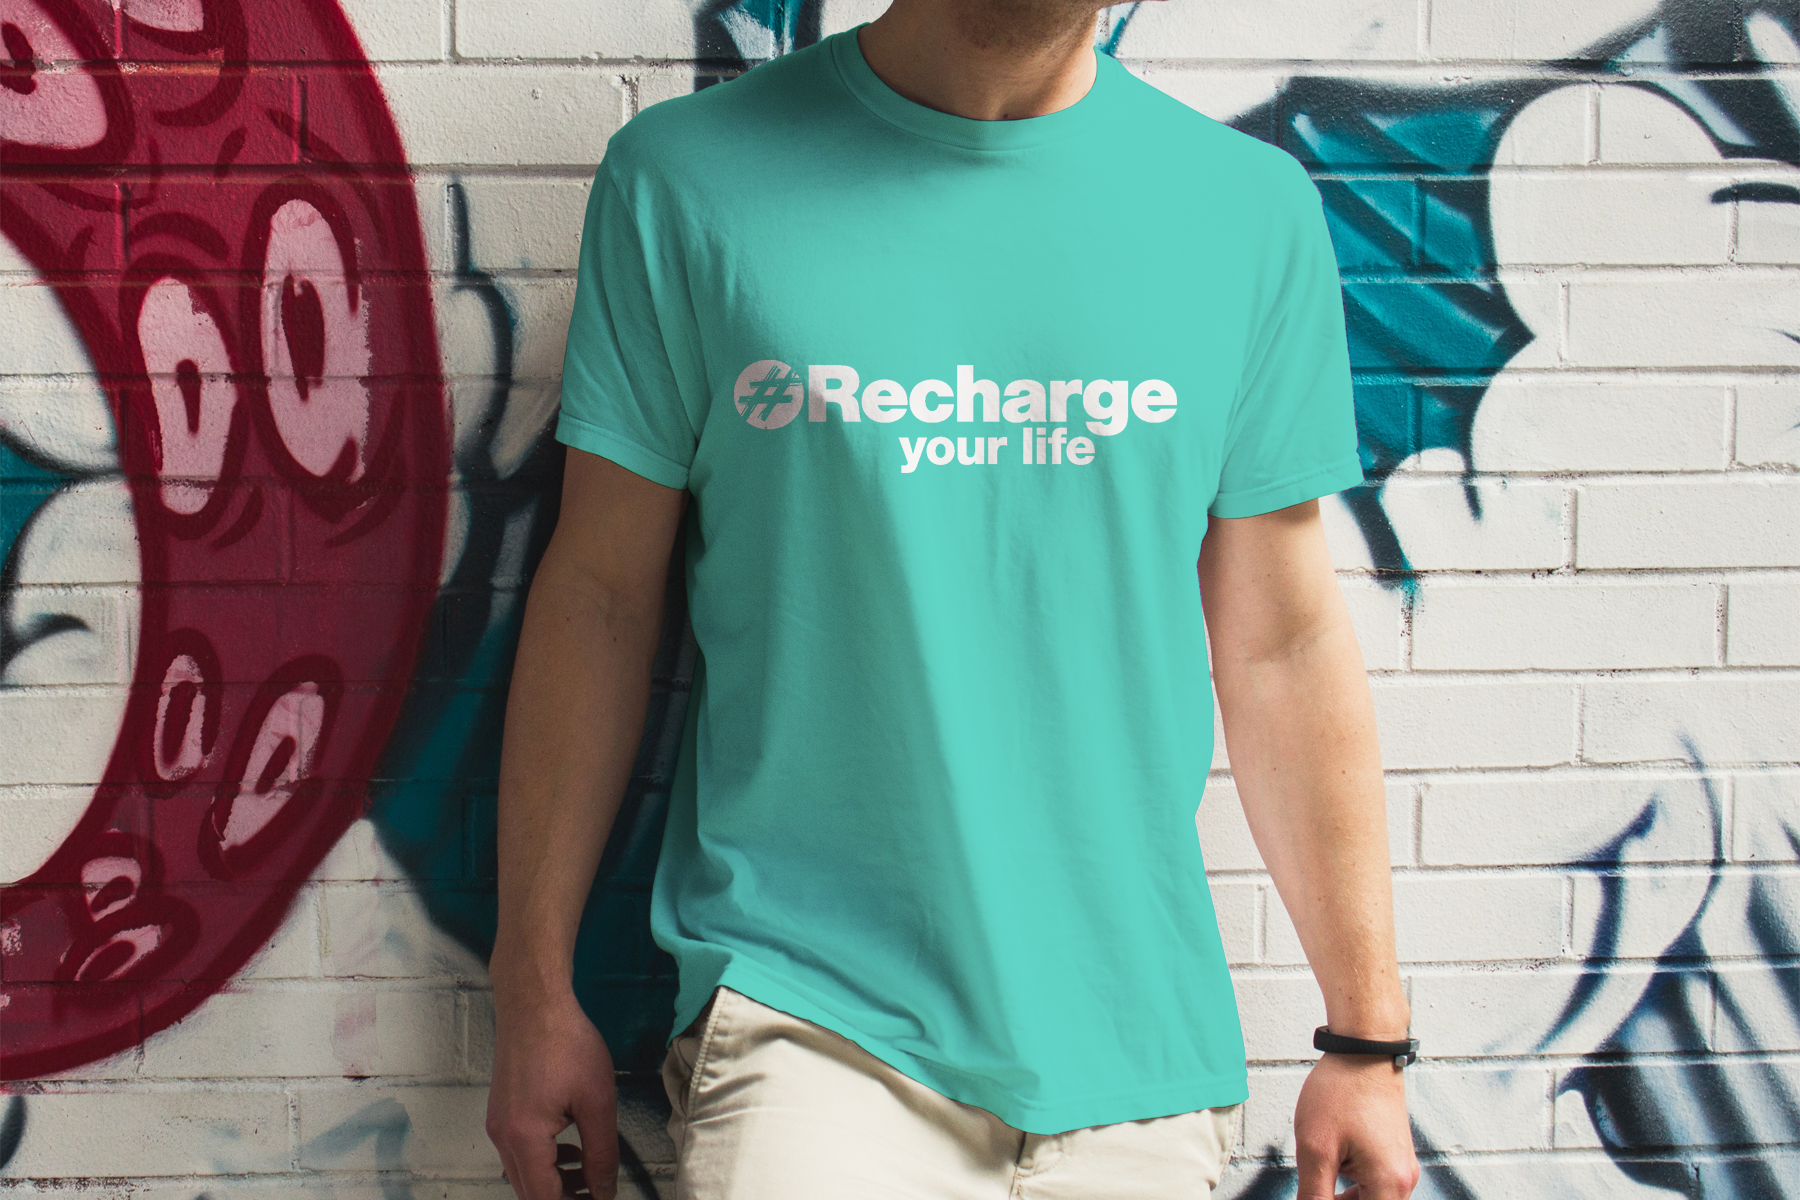 Free-Outdoor-Boy-Wearing-TShirt-Mockup